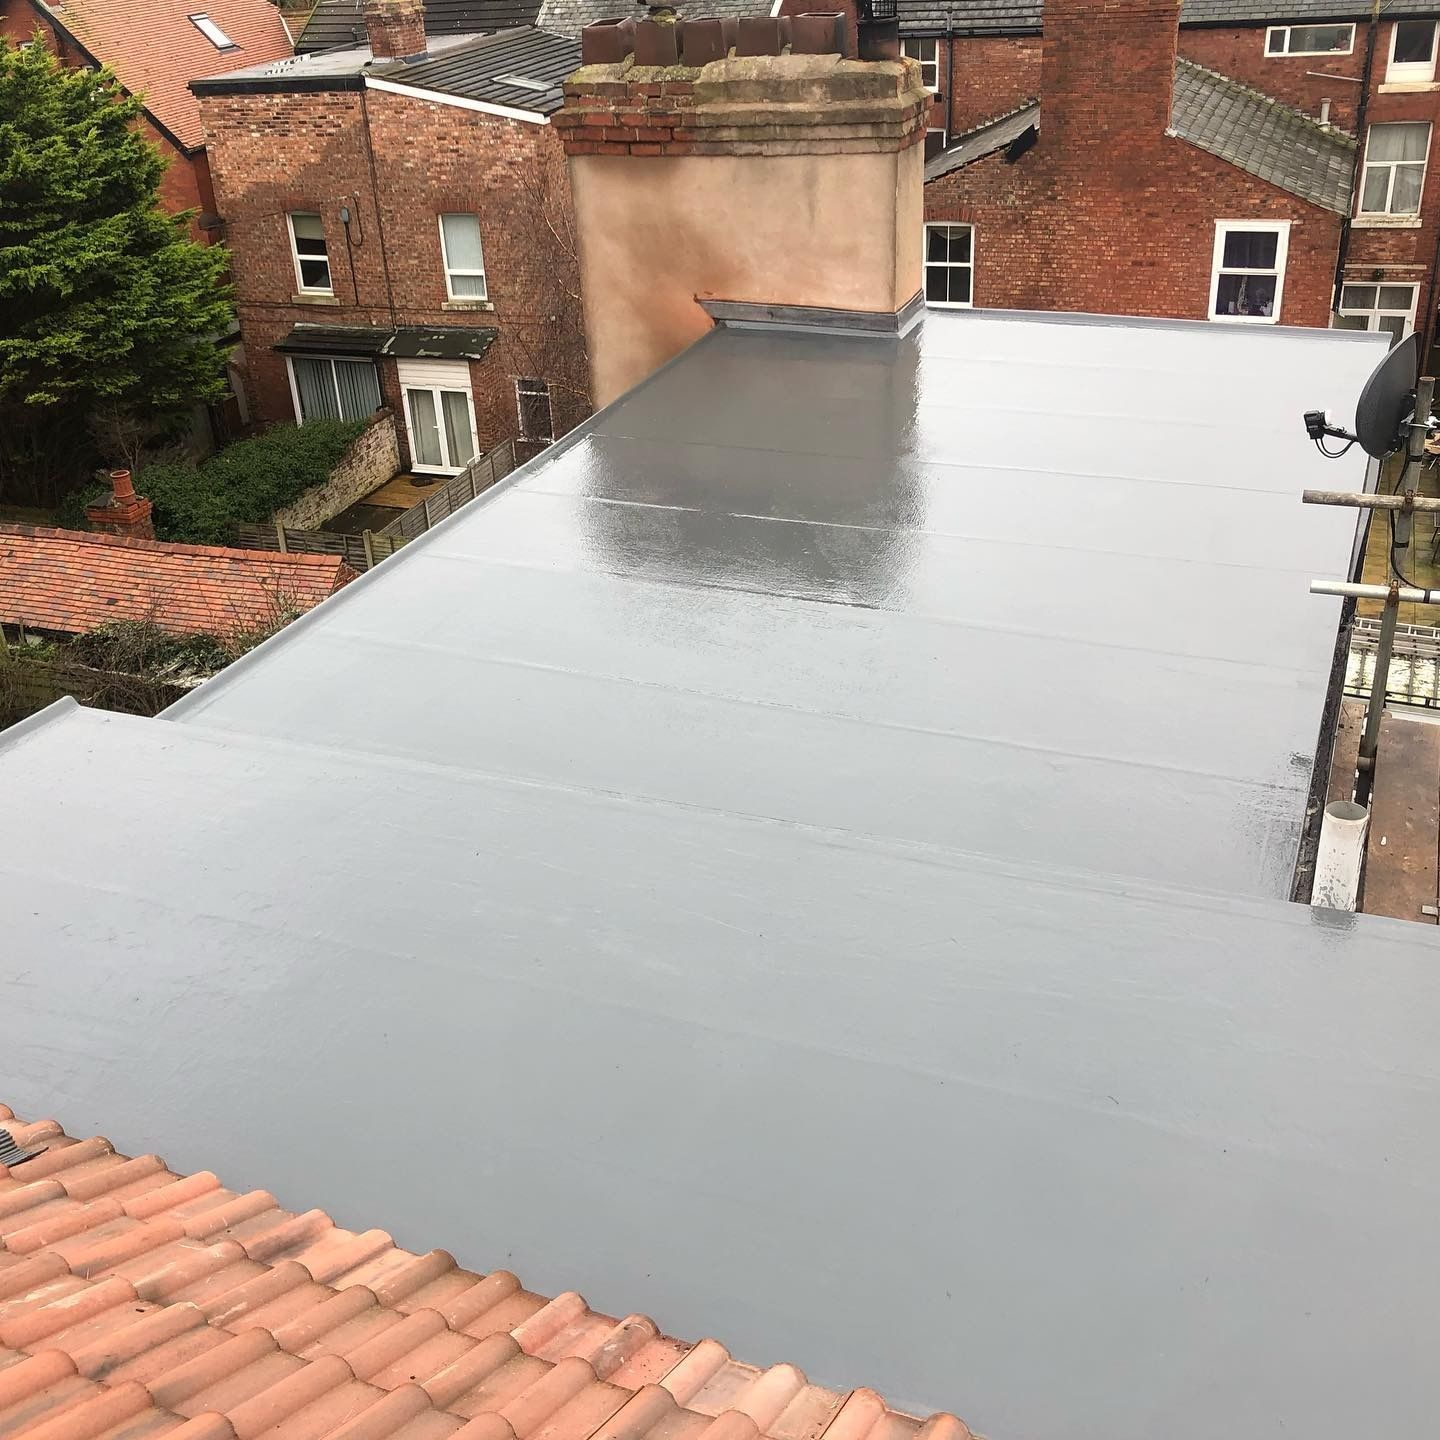 Fibreglass Grp Flat Roofs In 2020 Flat Roof Roofer Roofing